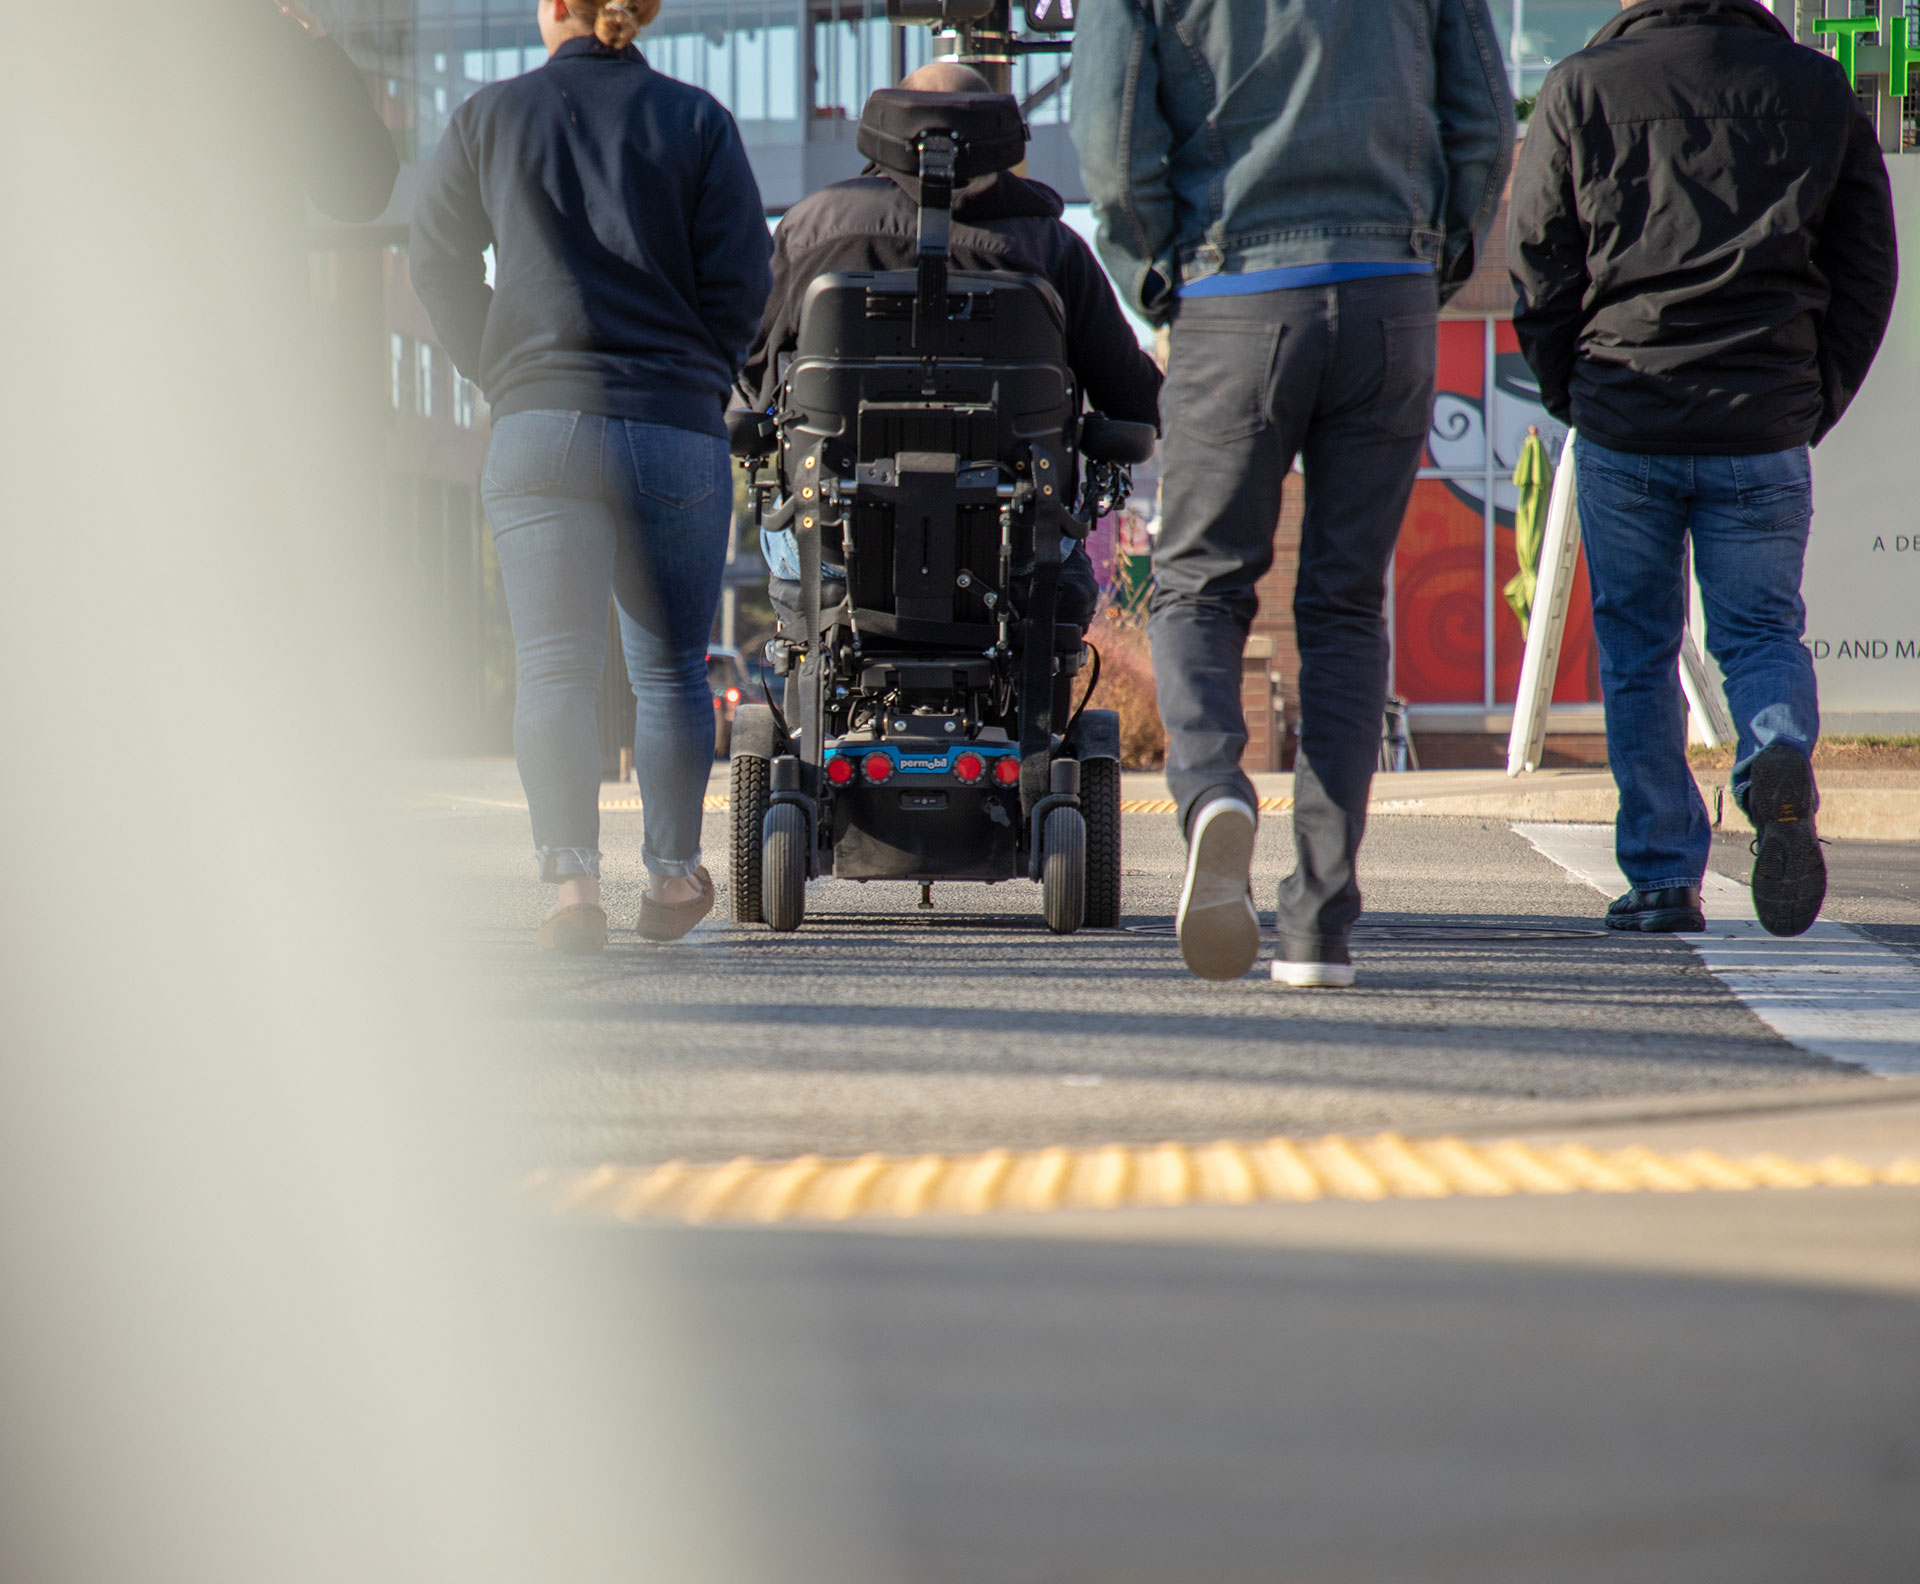 a group of pedestrians crossing the street together, one man uses a power wheelchair